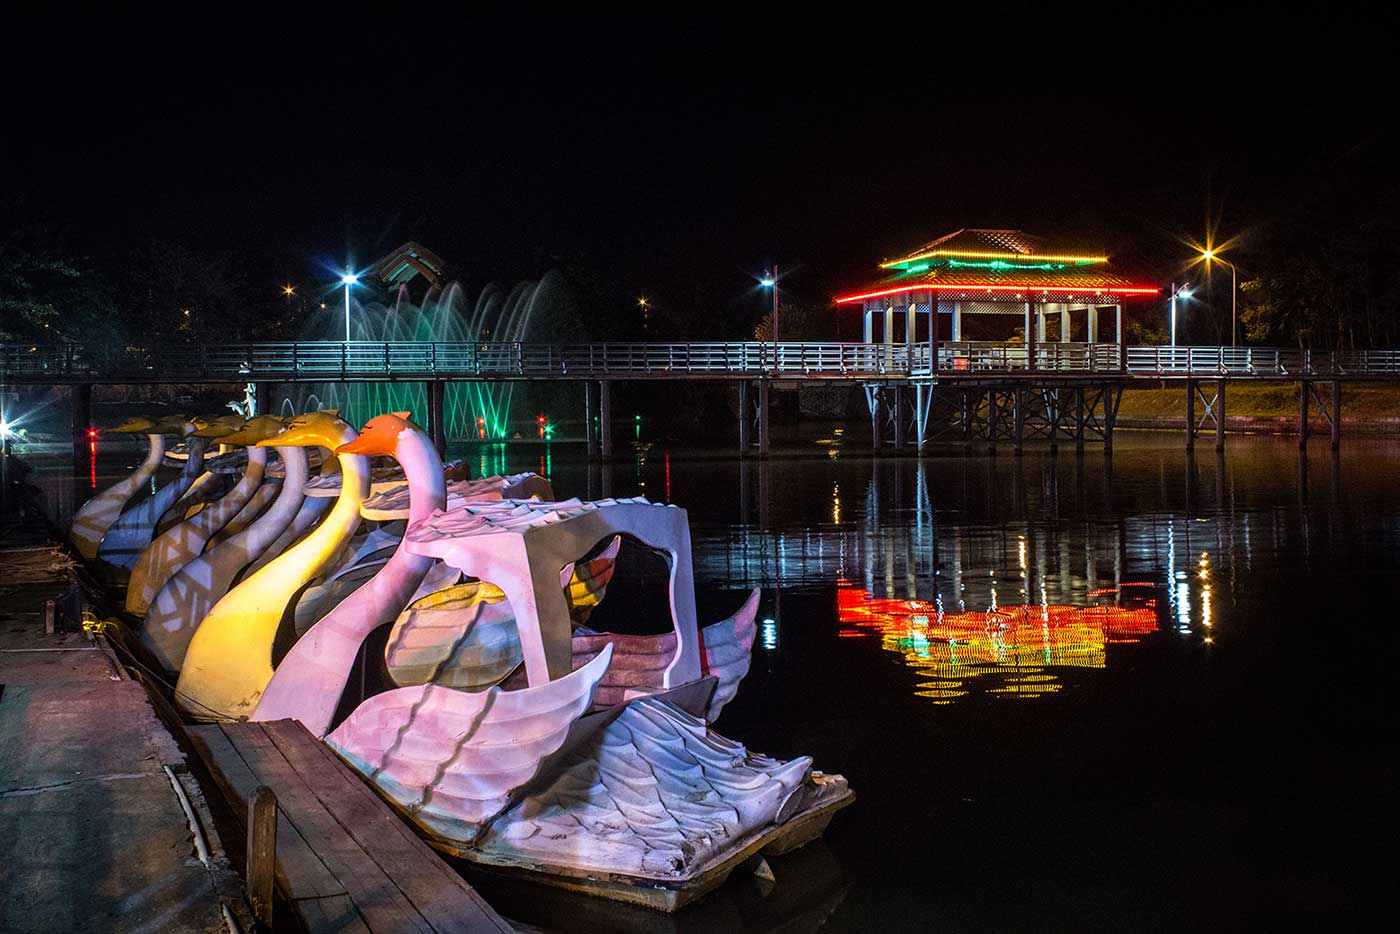 Swan boats in Naypyidaw's Fountain Park.